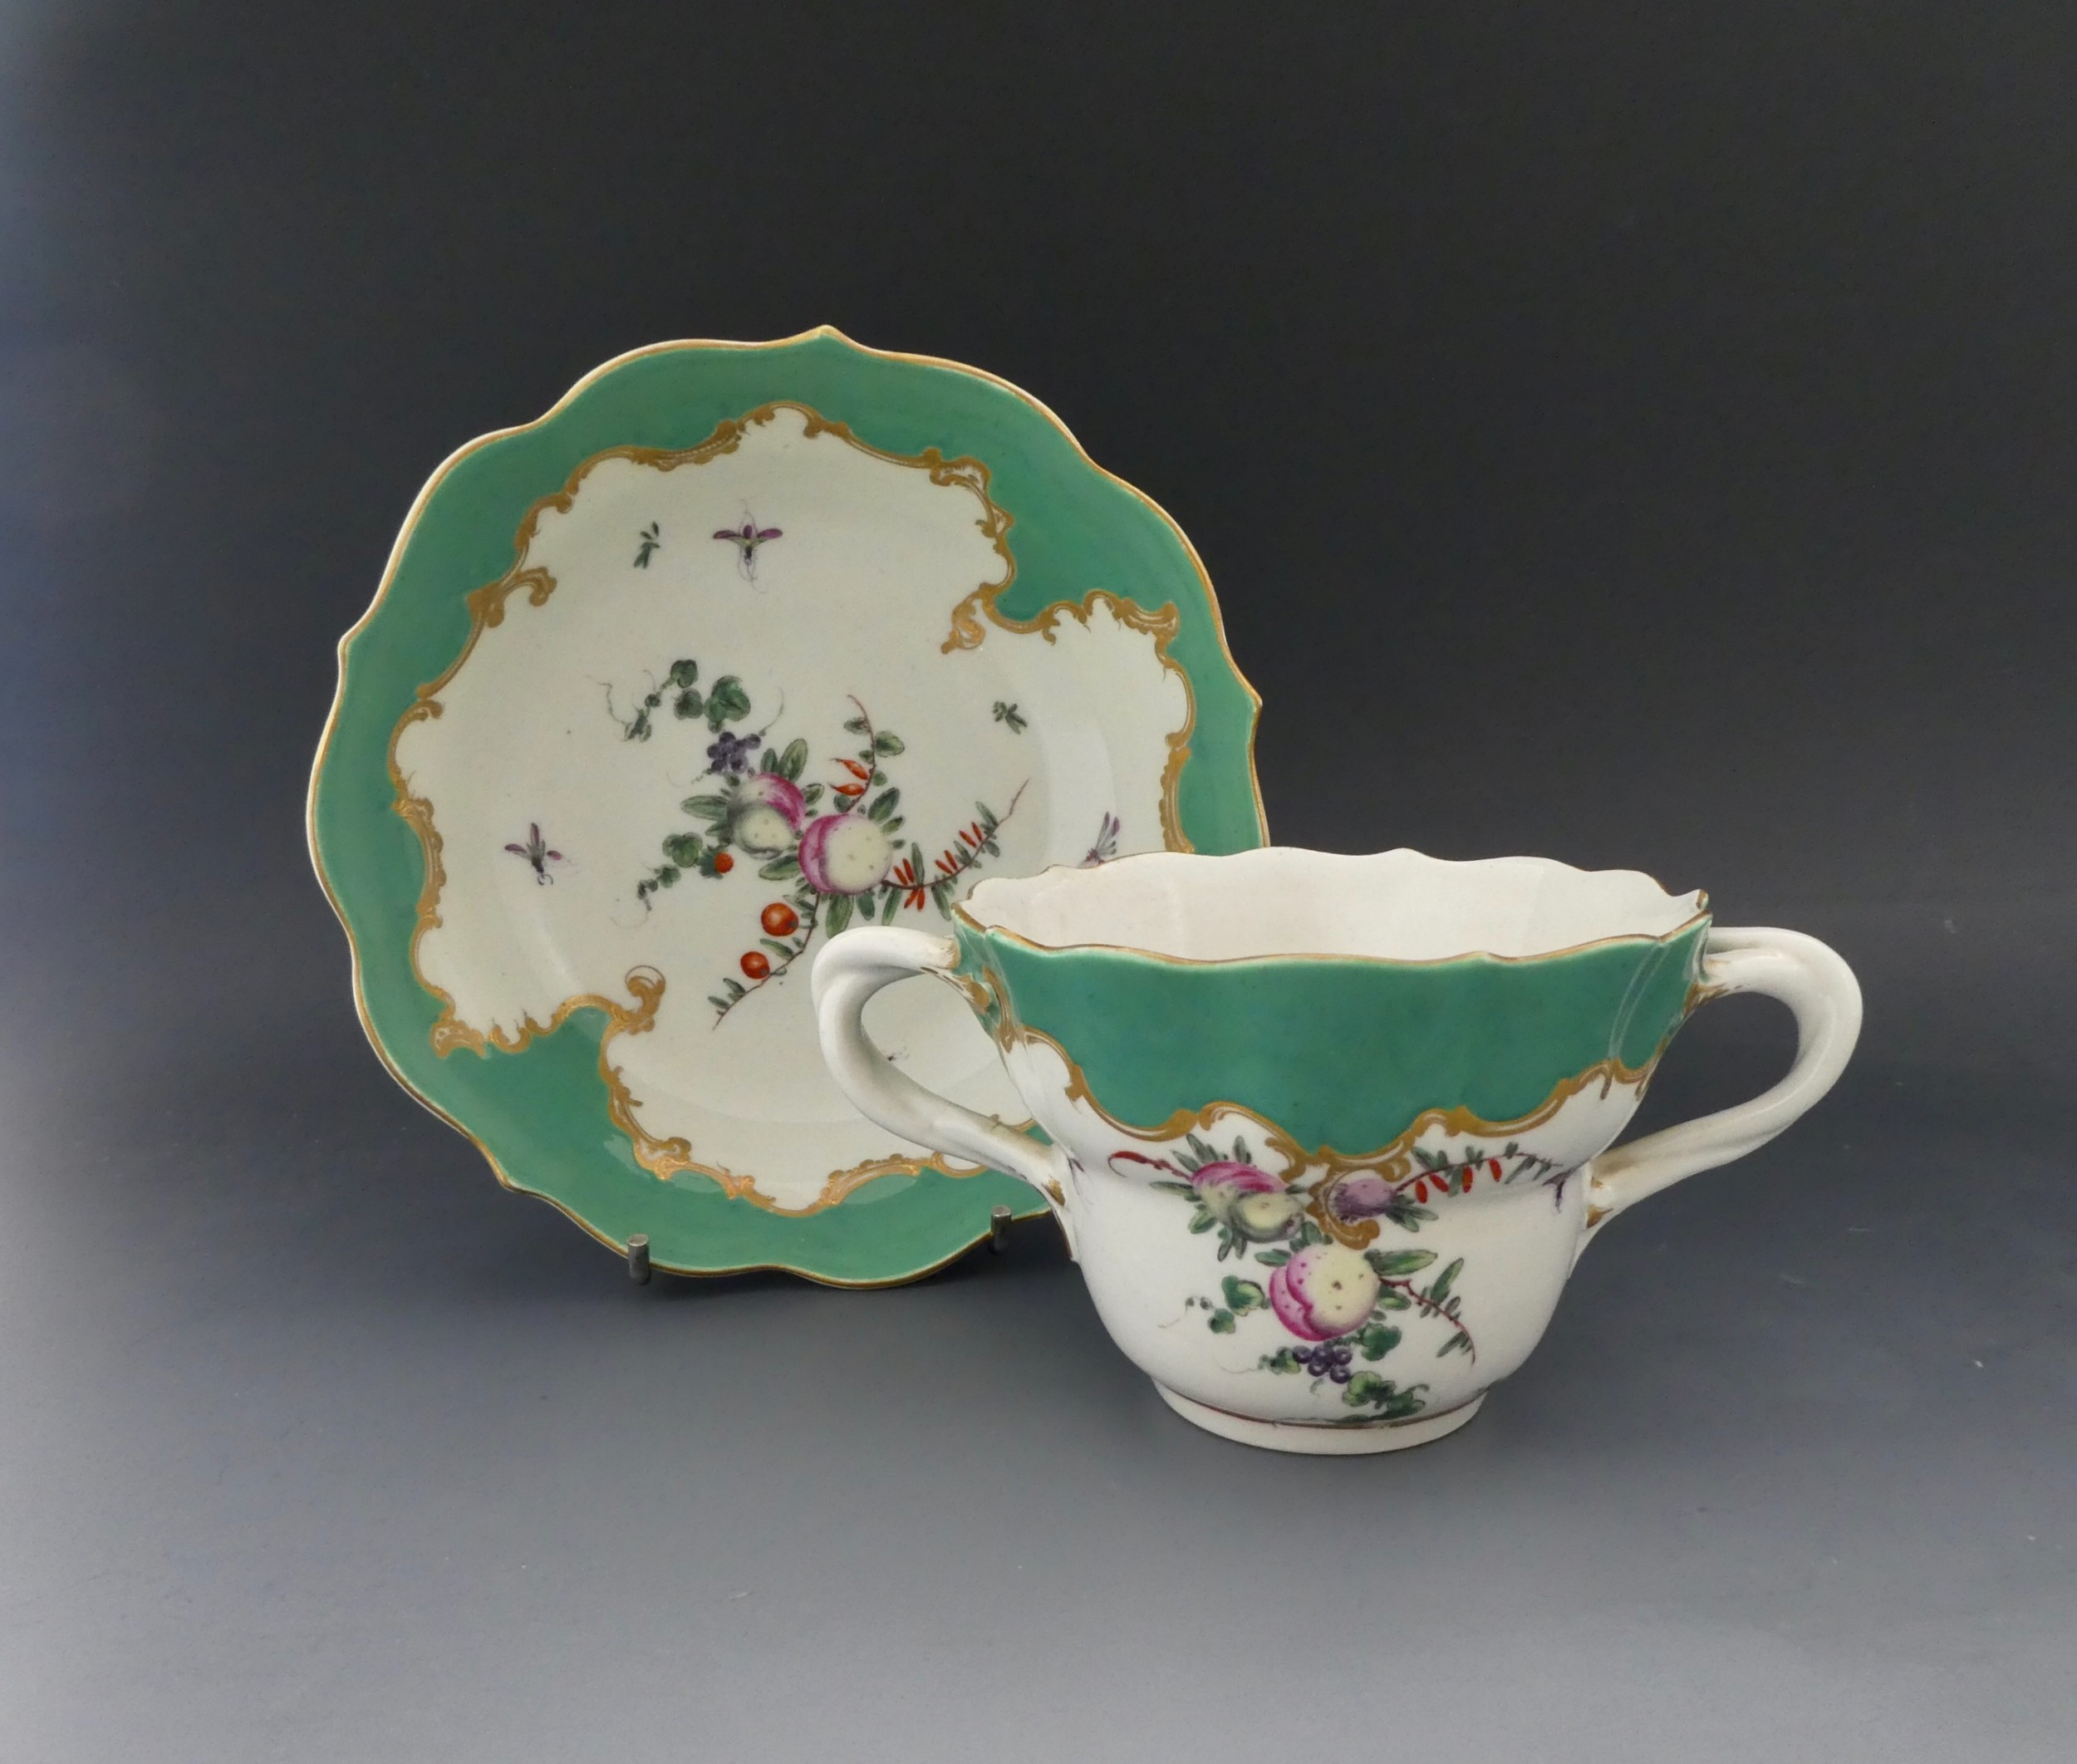 worcester porcelain chocolate cup and saucer c1770